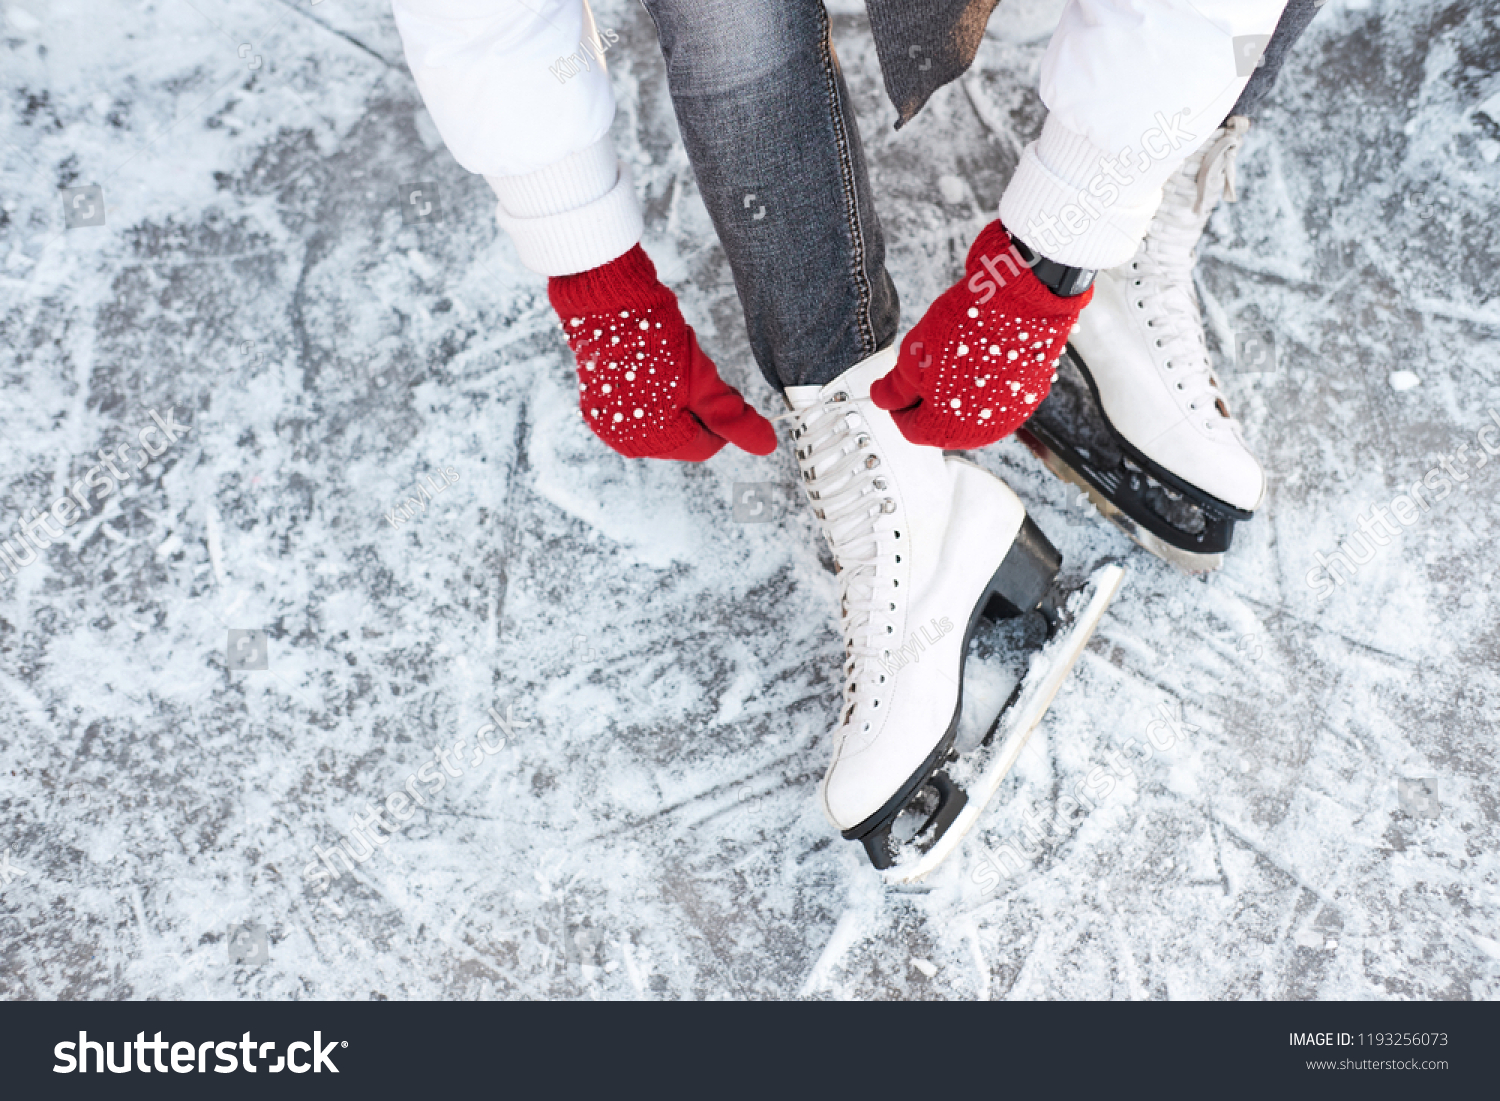 Girl tying shoelaces on ice skates before skating on the ice rink, hands in red knitted gloves. View from top. #1193256073